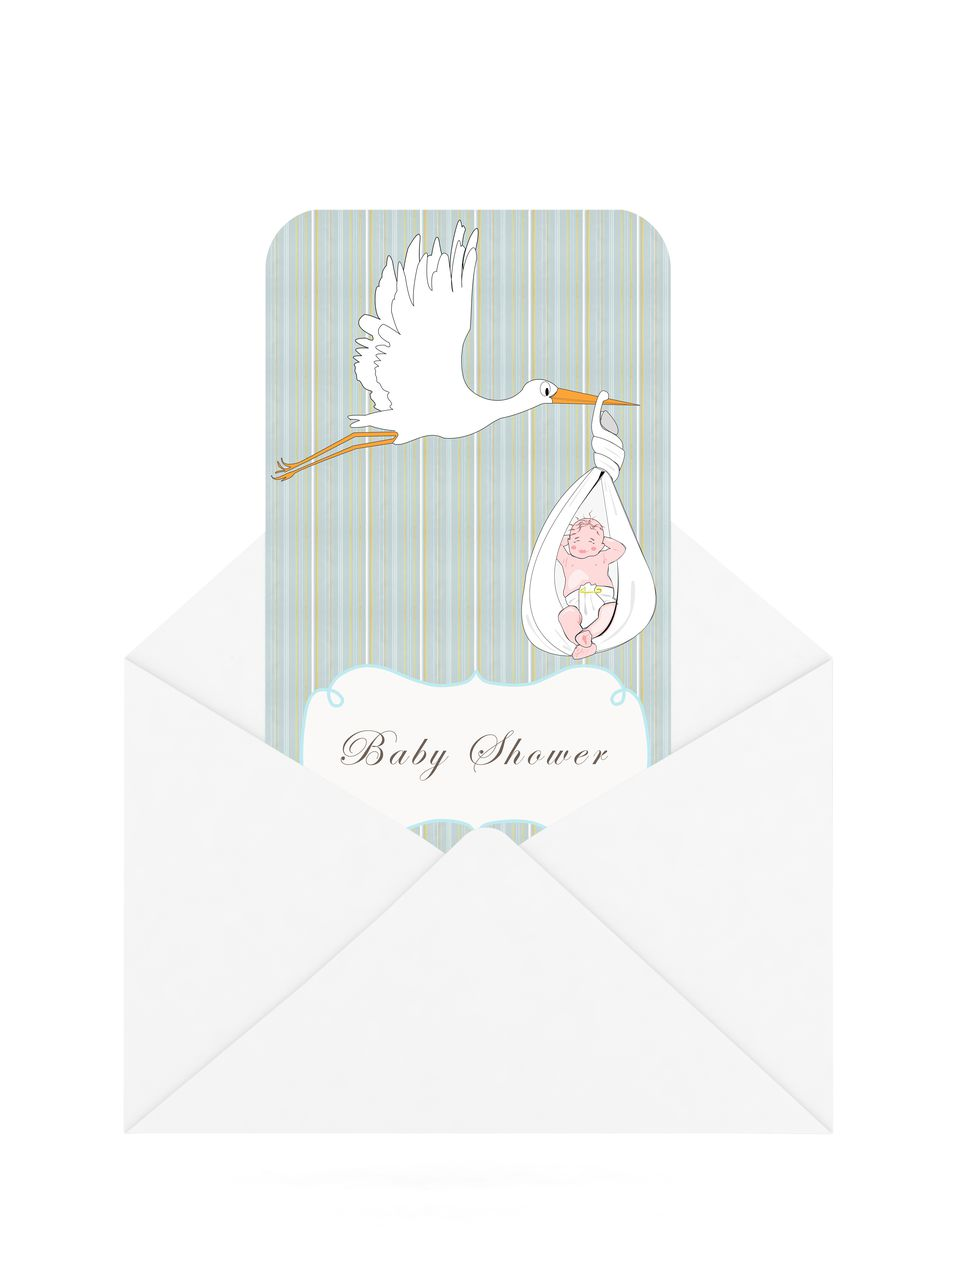 How to Write and Choose Baby Shower Invitations